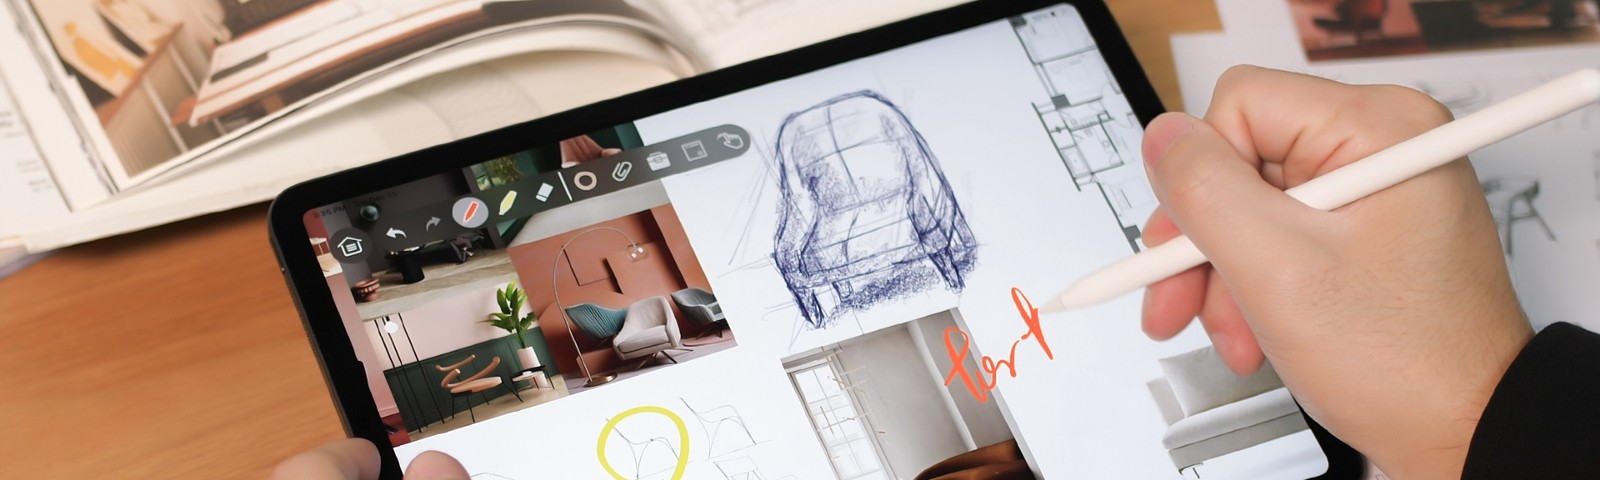 IPEVO Whiteboard; A New Way To Provide Digital Canvas For Idea Sharing And Distance Learning